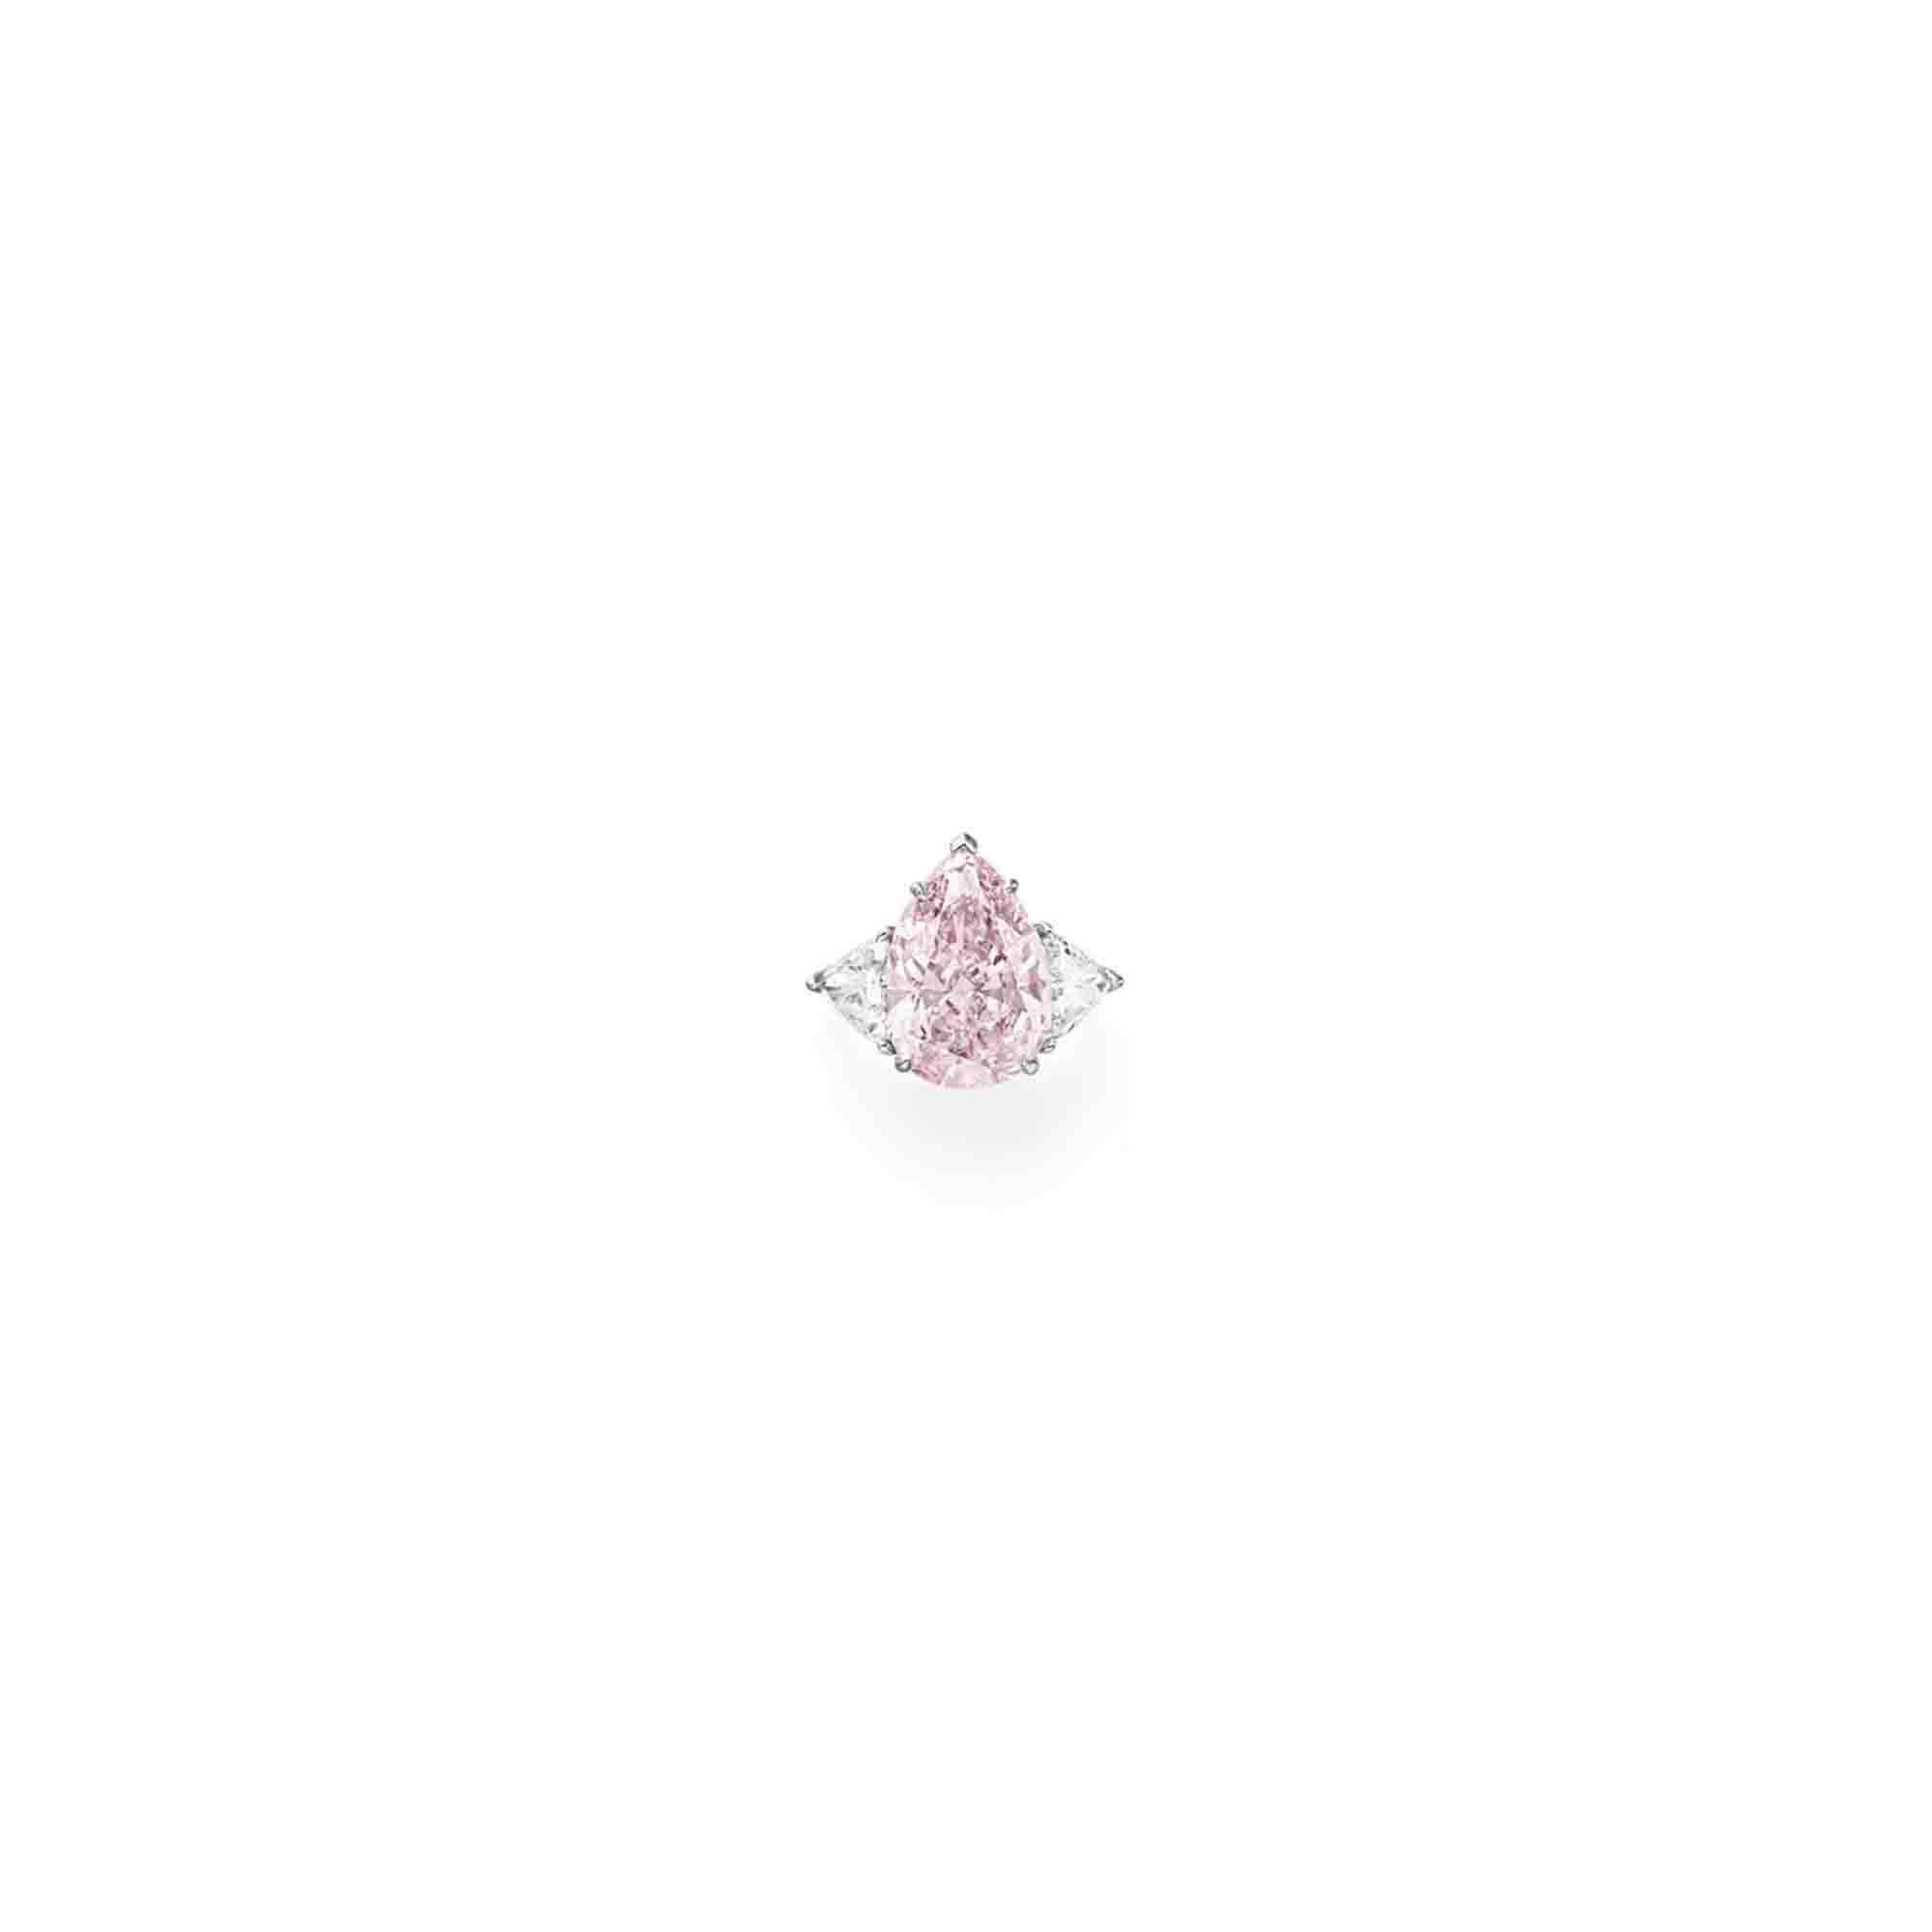 A FINE COLORED DIAMOND RING, BY TIFFANY & CO.